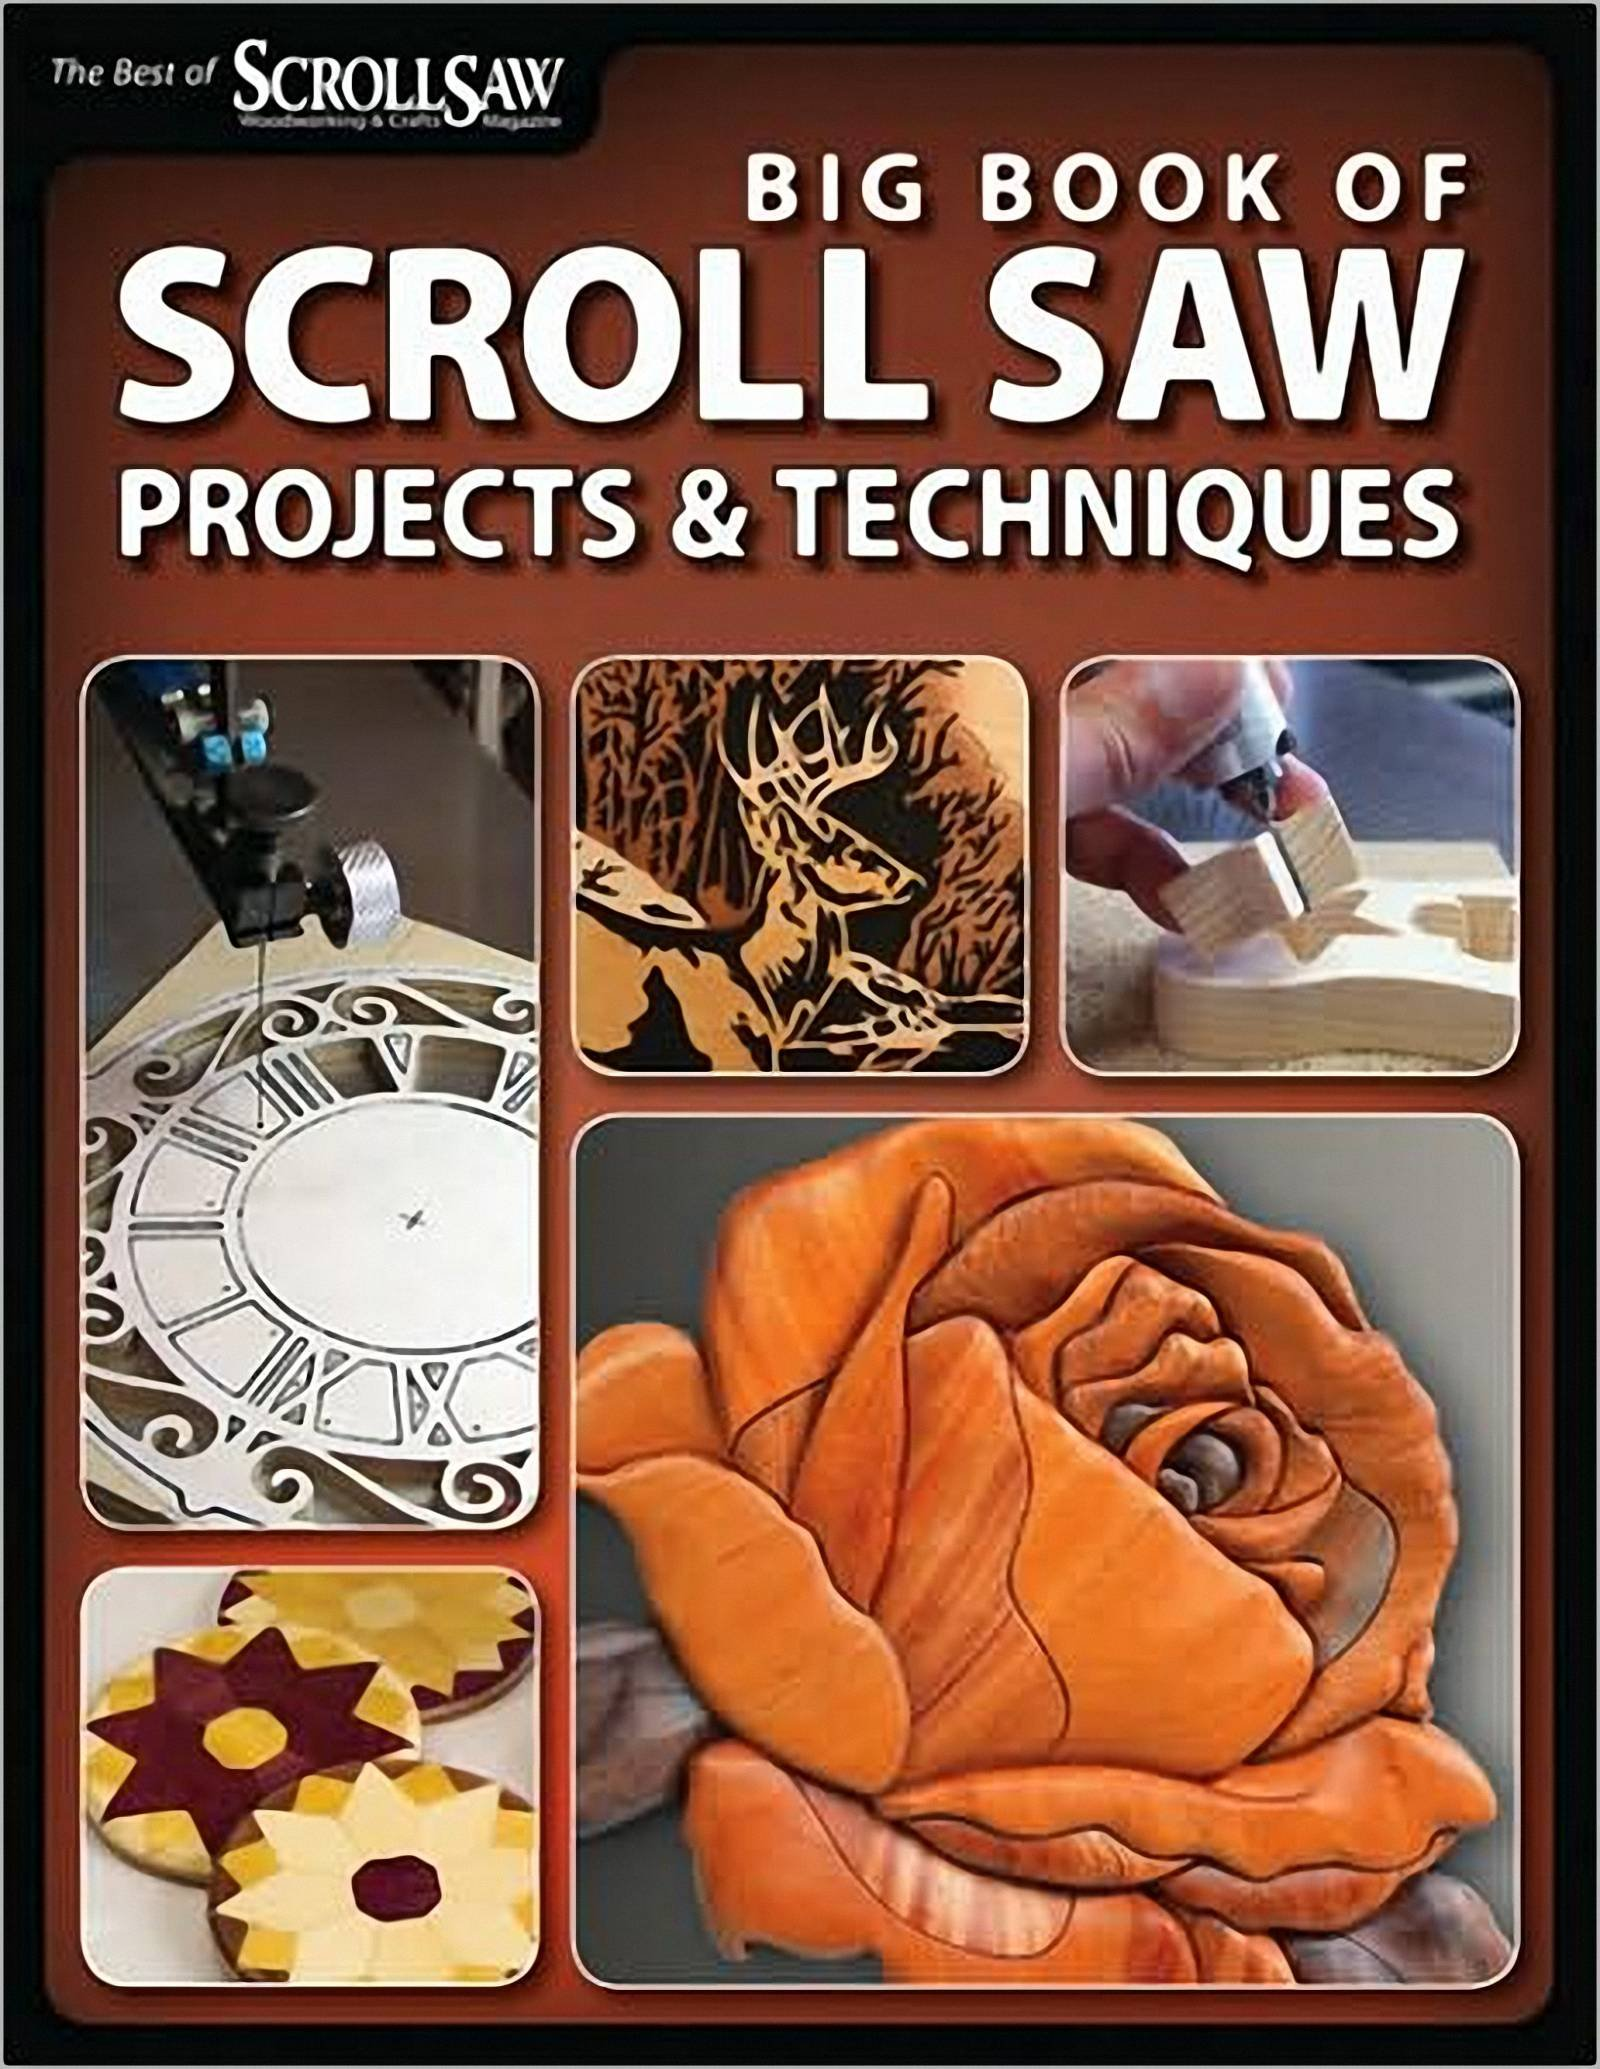 Big Book Of Scroll Saw Projects & Techniques -2009- PDF | Carpintería Digital